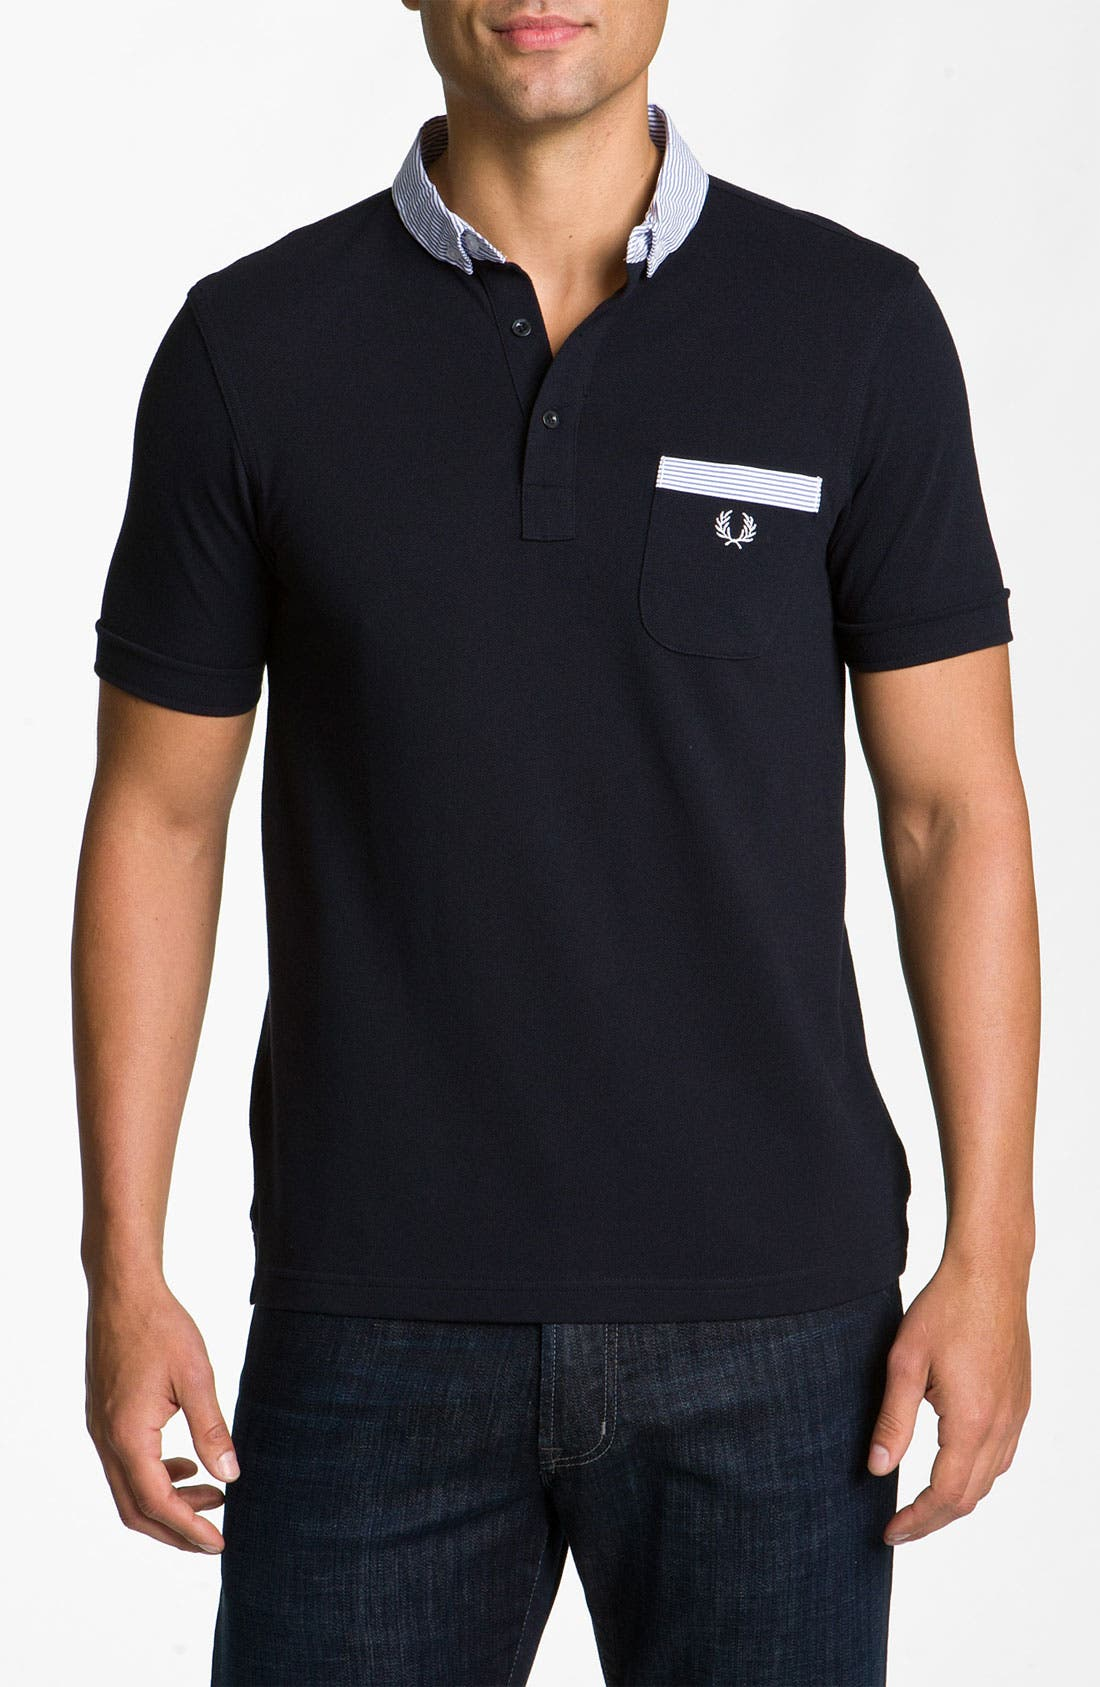 Alternate Image 1 Selected - Fred Perry Trim Fit Polo